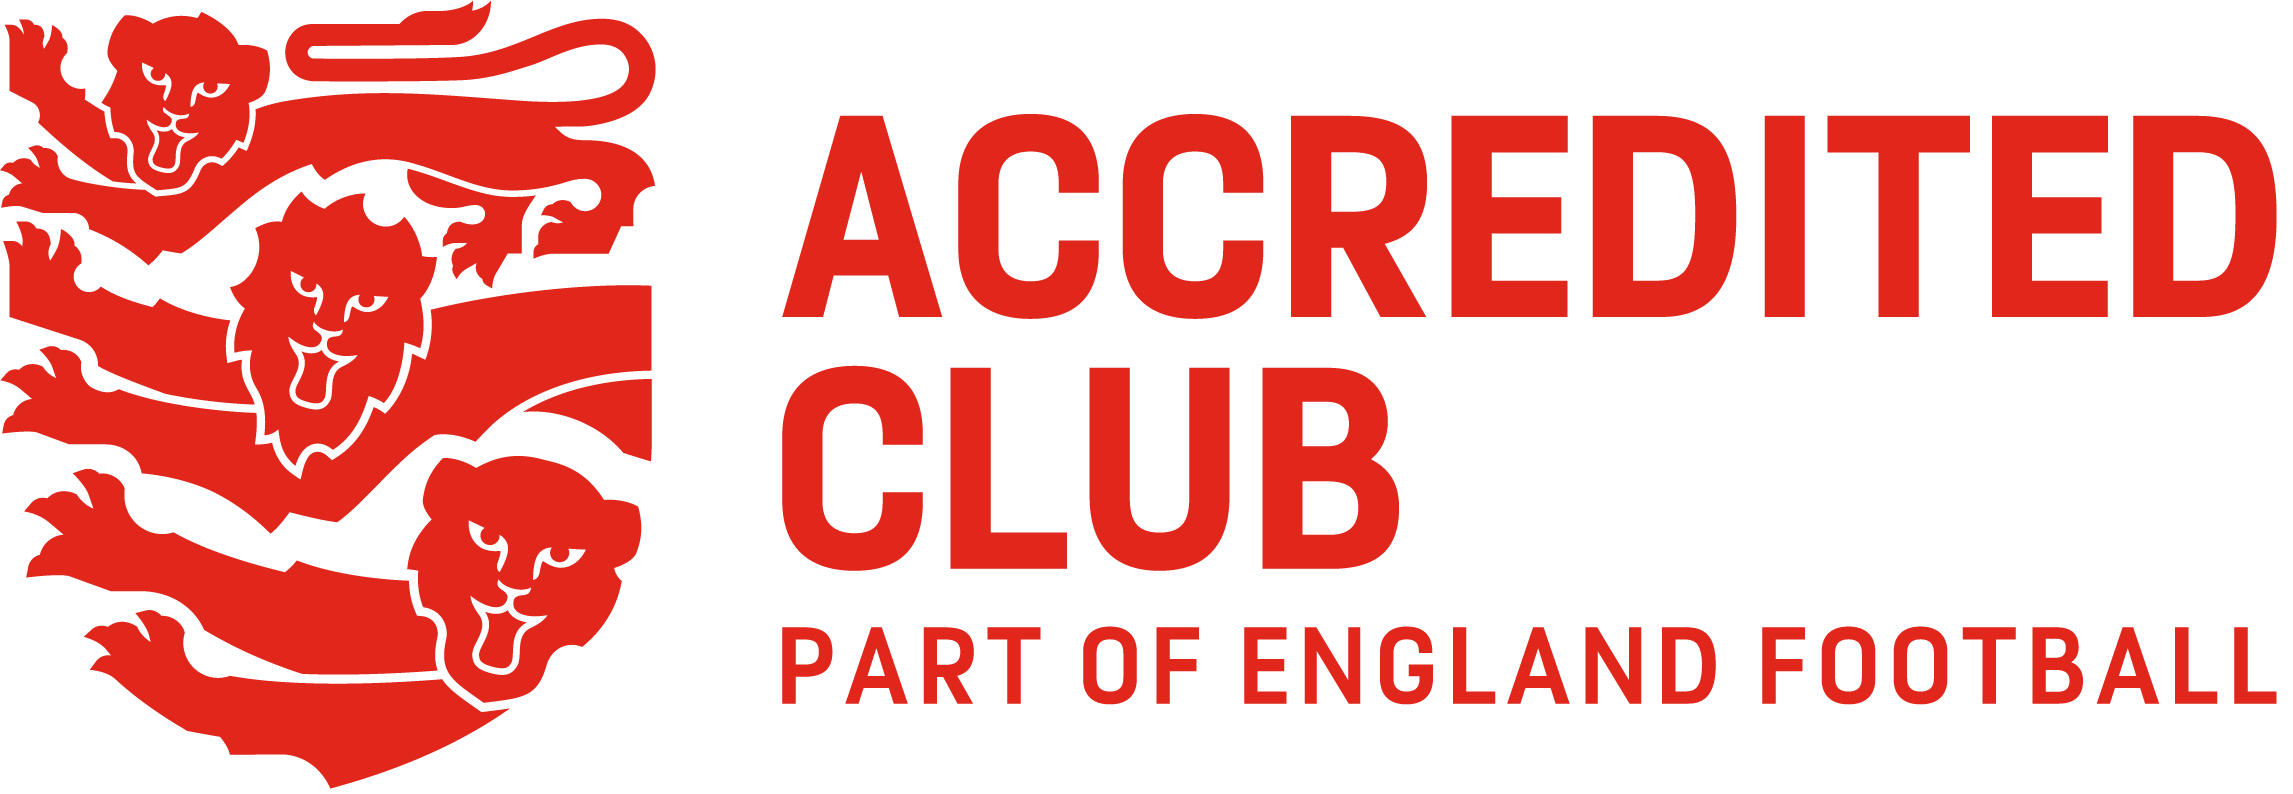 england football accredited